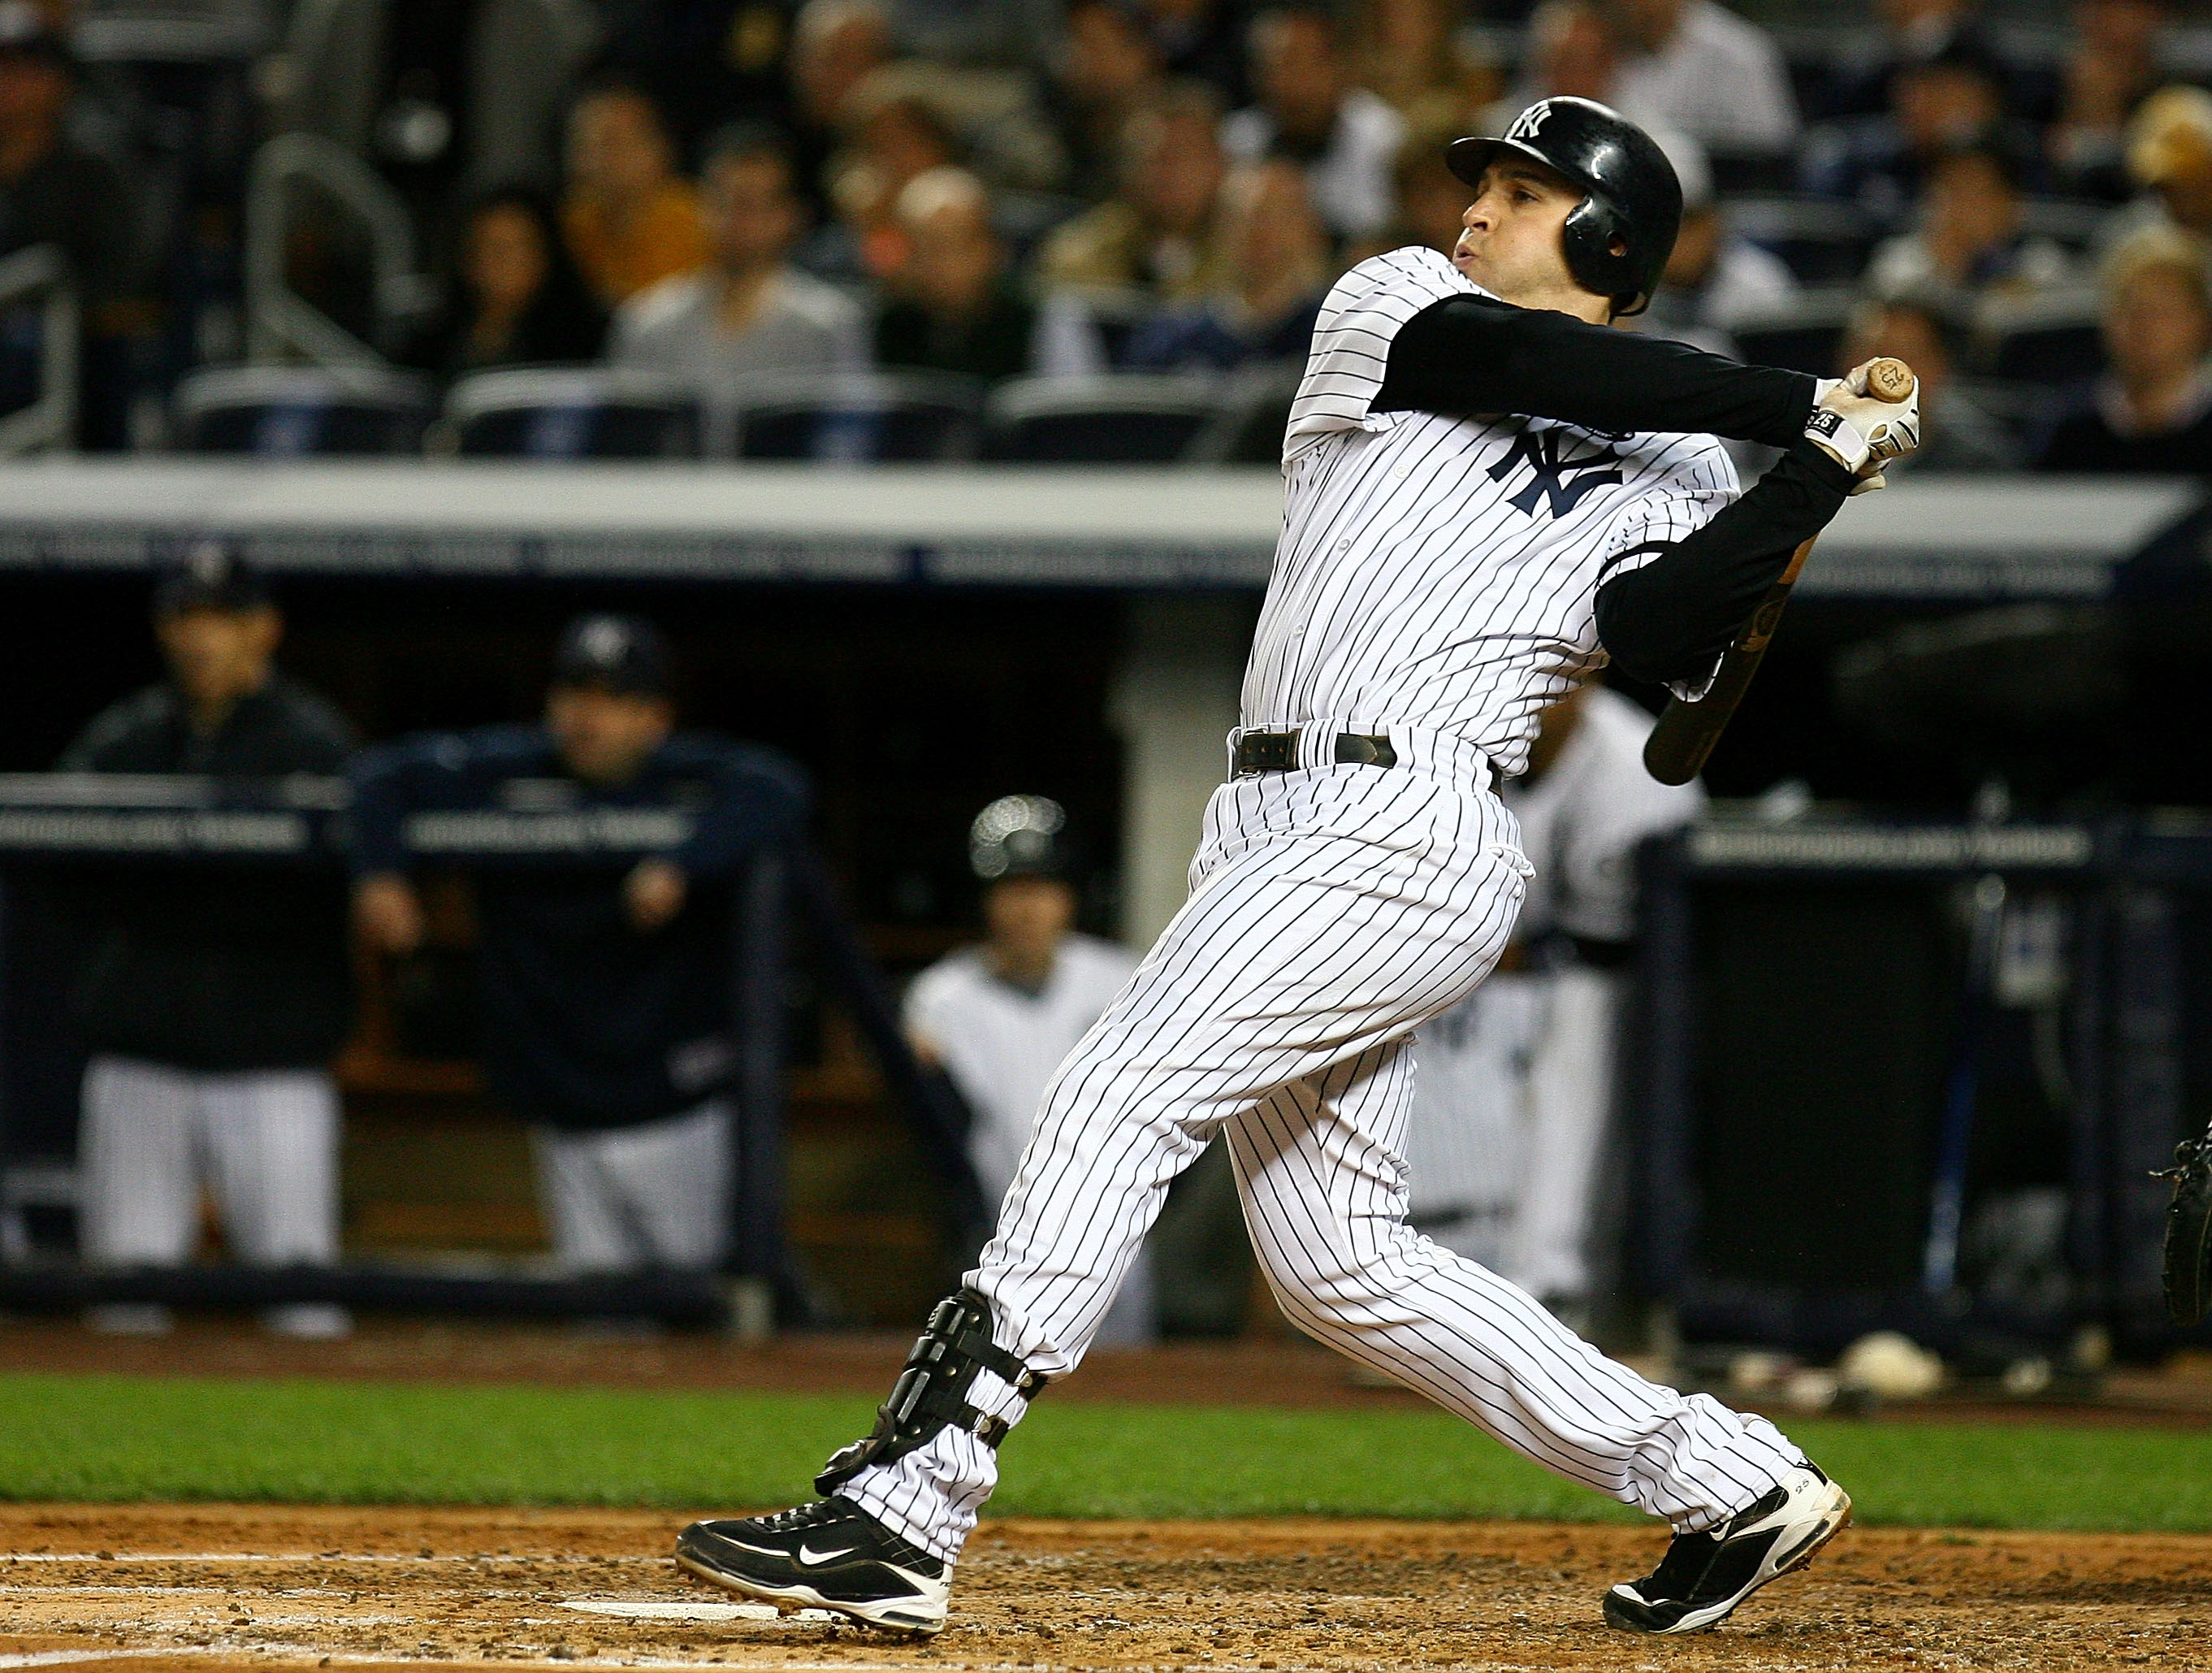 NEW YORK - OCTOBER 09:  Mark Teixeira #25 of the New York Yankees hits a RBI single in the bottom of the third inning against the Minnesota Twins during Game Three of the ALDS part of the 2010 MLB Playoffs at Yankee Stadium on October 9, 2010 in the Bronx